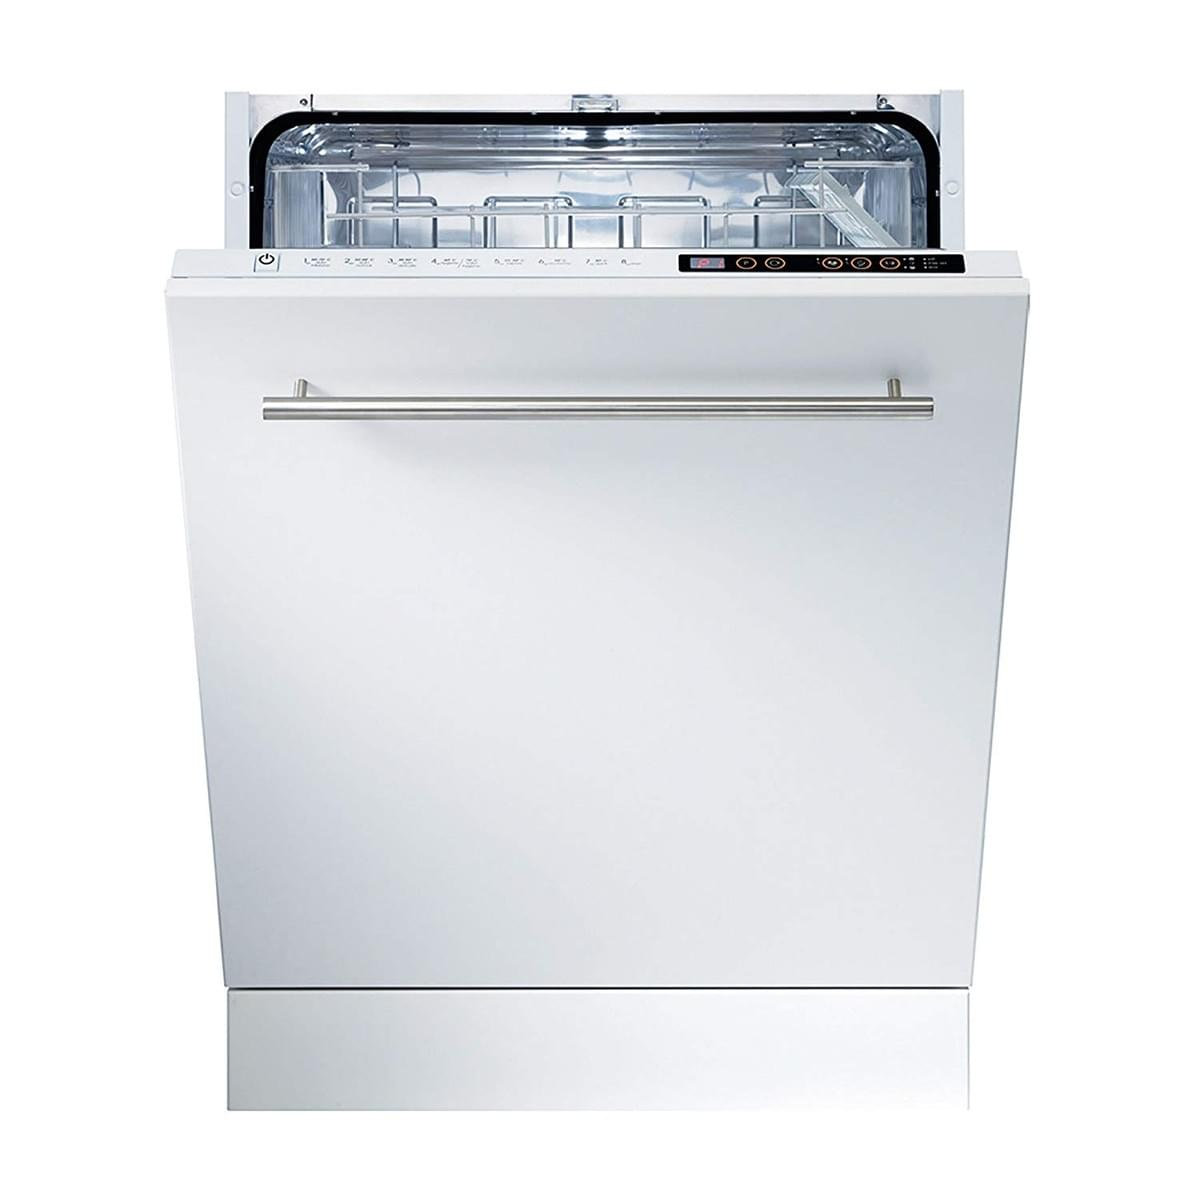 Statesman Dishwashers in stock at M&G Energy